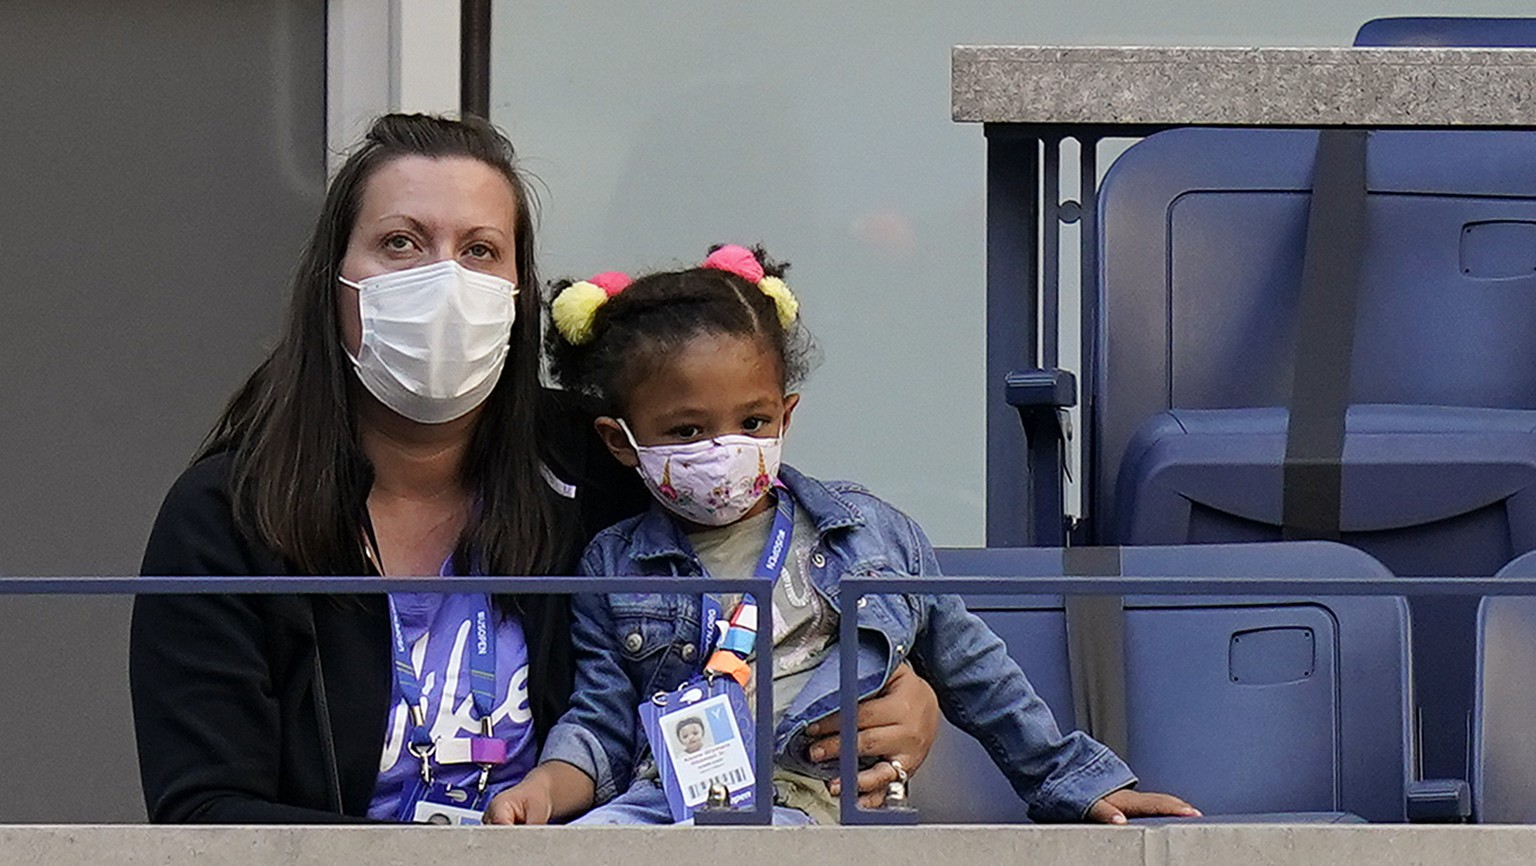 Three-year-old Alexis Olympia Ohanian Jr., right, daughter of Serena Williams, of the United States, watches her mother play against Sloane Stephens, of the United States, during the third round of the US Open tennis championships, Saturday, Sept. 5, 2020, in New York. (AP Photo/Seth Wenig)